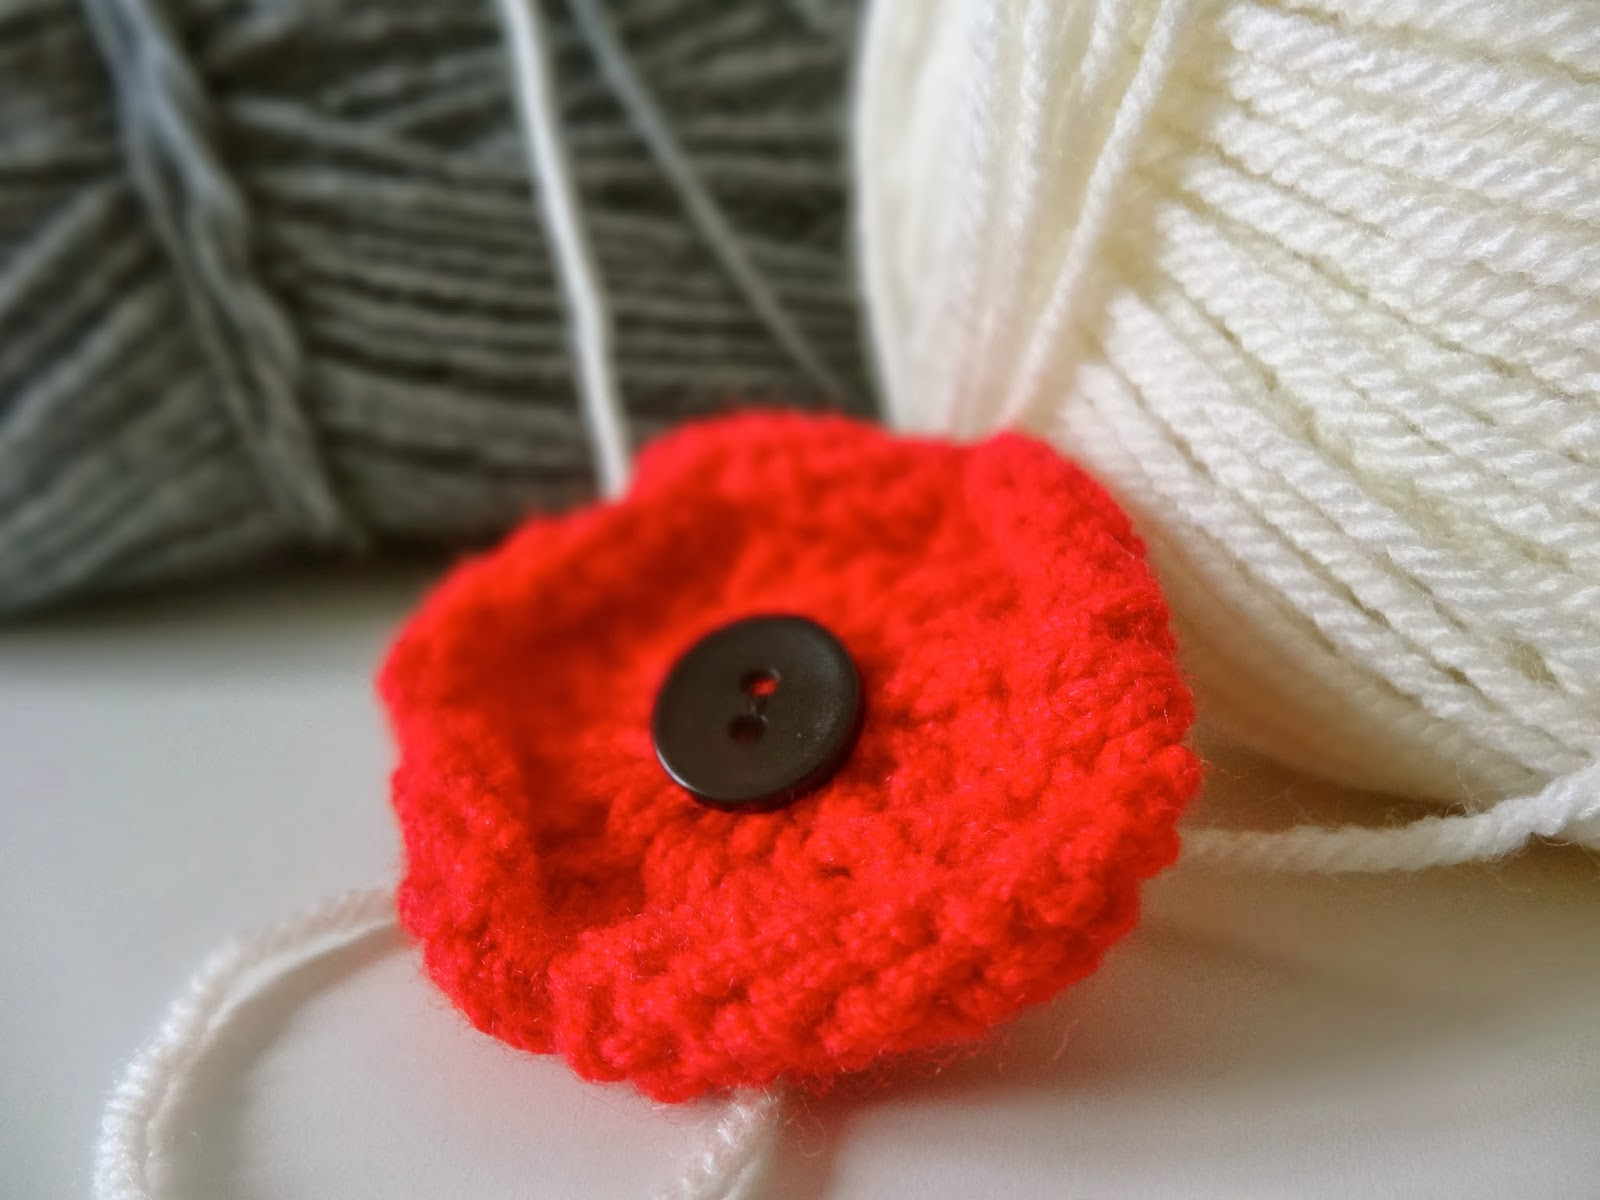 Easy Afghan Knitting Patterns Free : Trends With Benefits: DIY Knitted Poppy